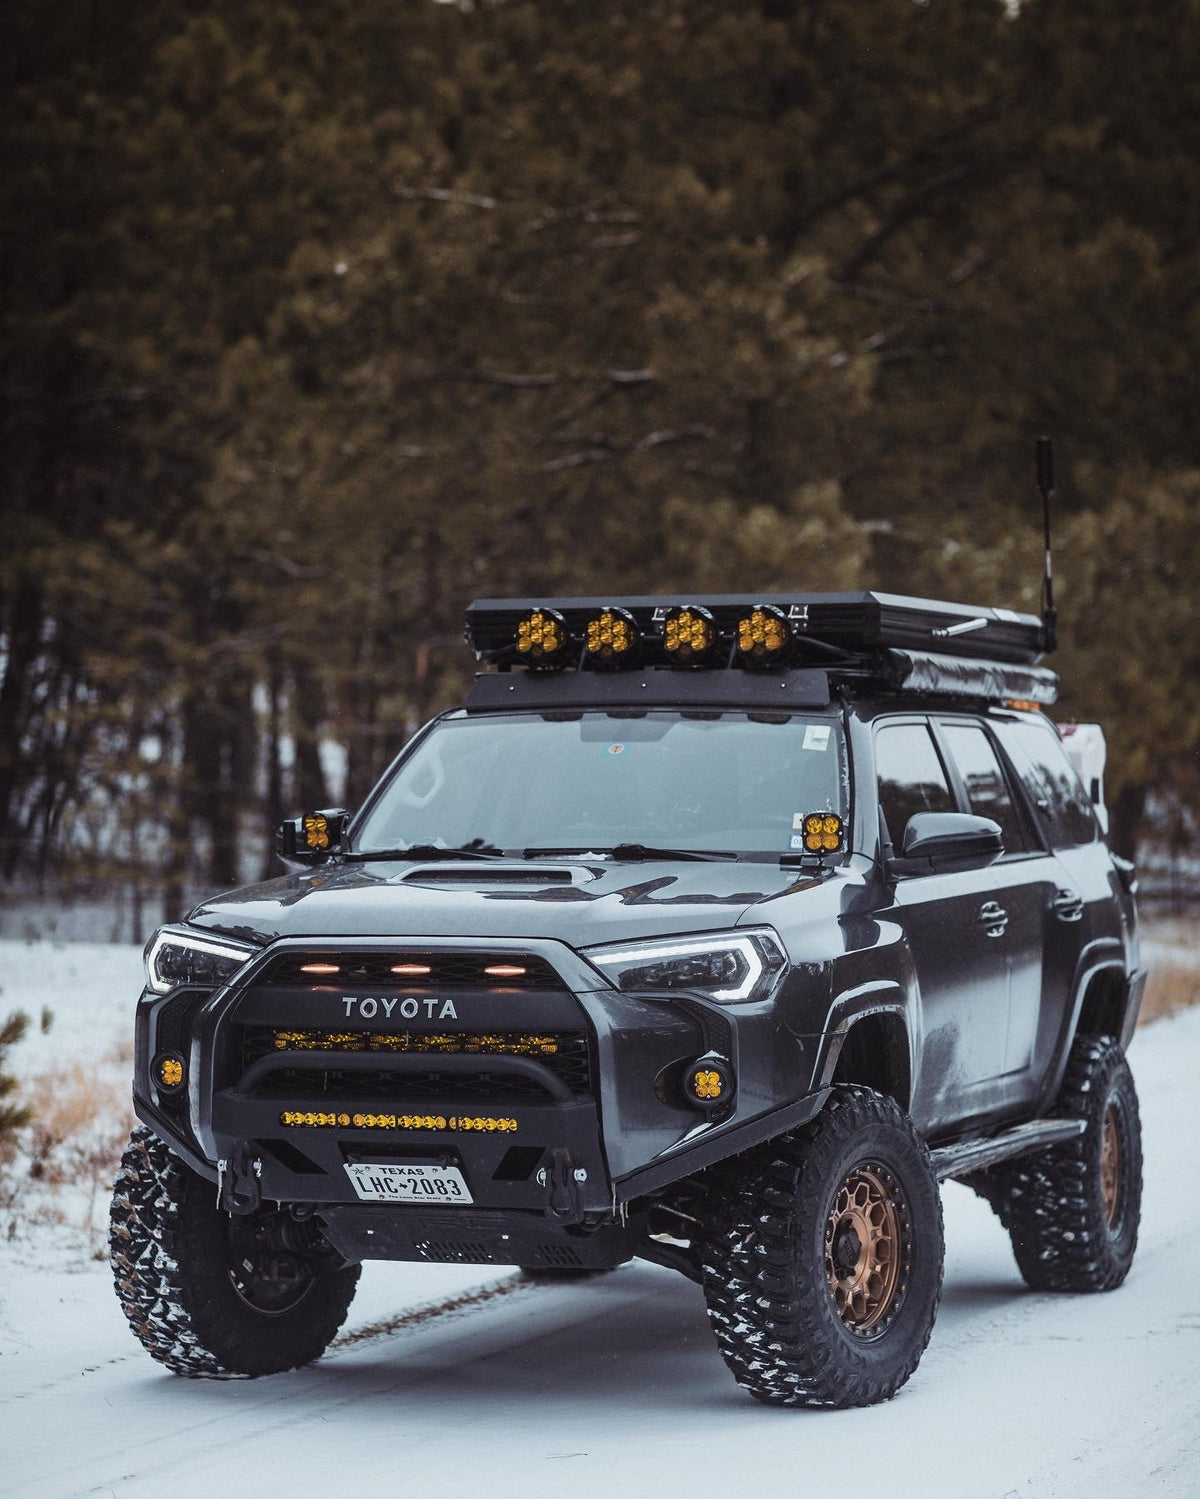 4Runner Lo Pro Bumper High Clearance Additions / 5th Gen / 2014+